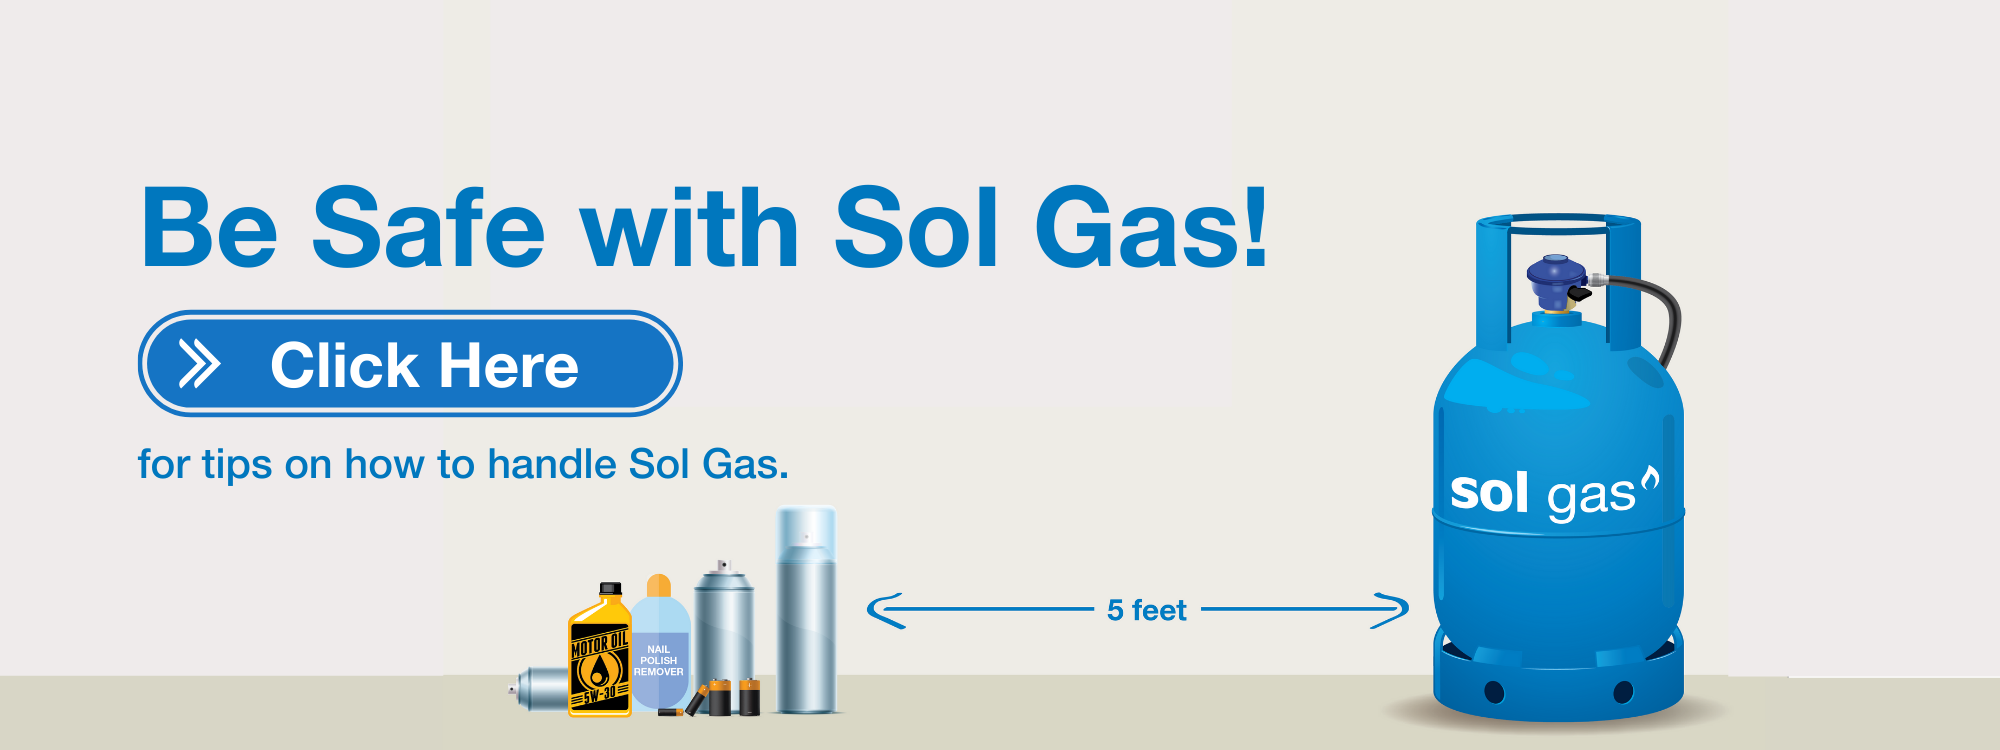 Be Safe With Sol Gas